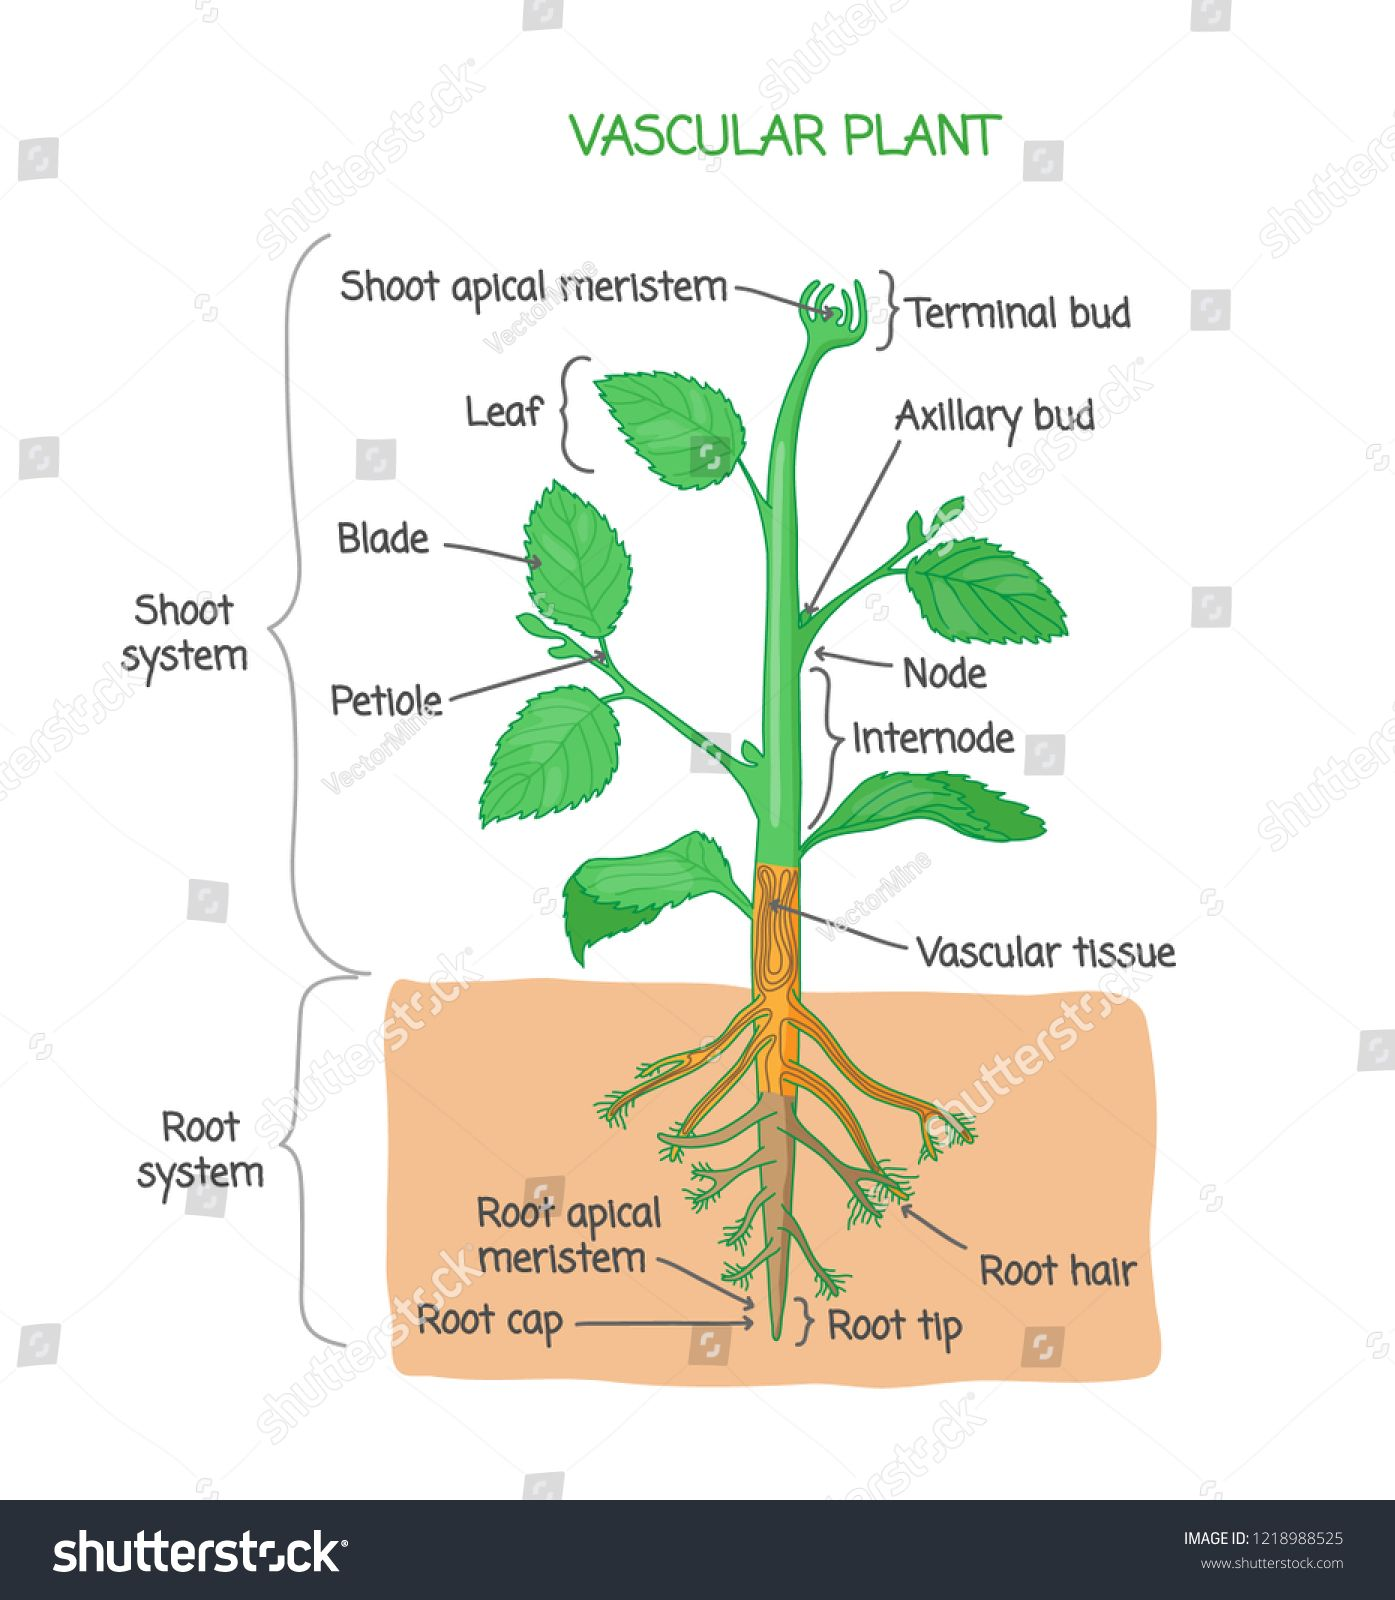 Vascular Plant Biological Structure Diagram With Labels Vector Illustration Drawing Poster Educational Scheme With Shoot Syste Vascular Plant Plants Vascular